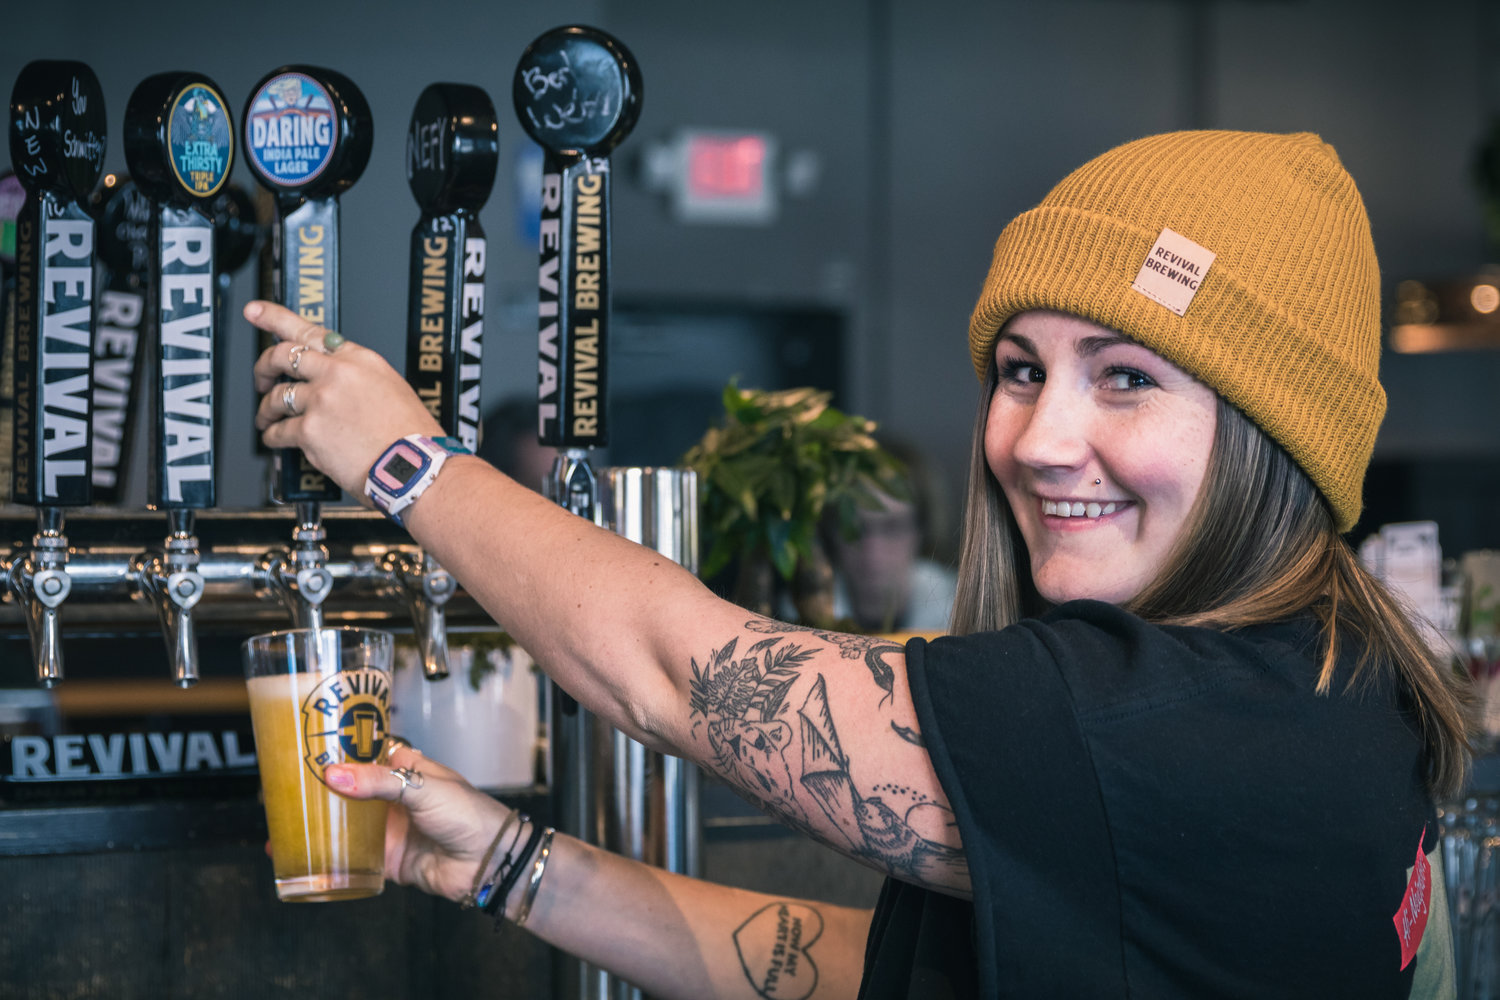 Bartender Lily Coughlin serving up cold pints in the Tap Room at Revival Brewery